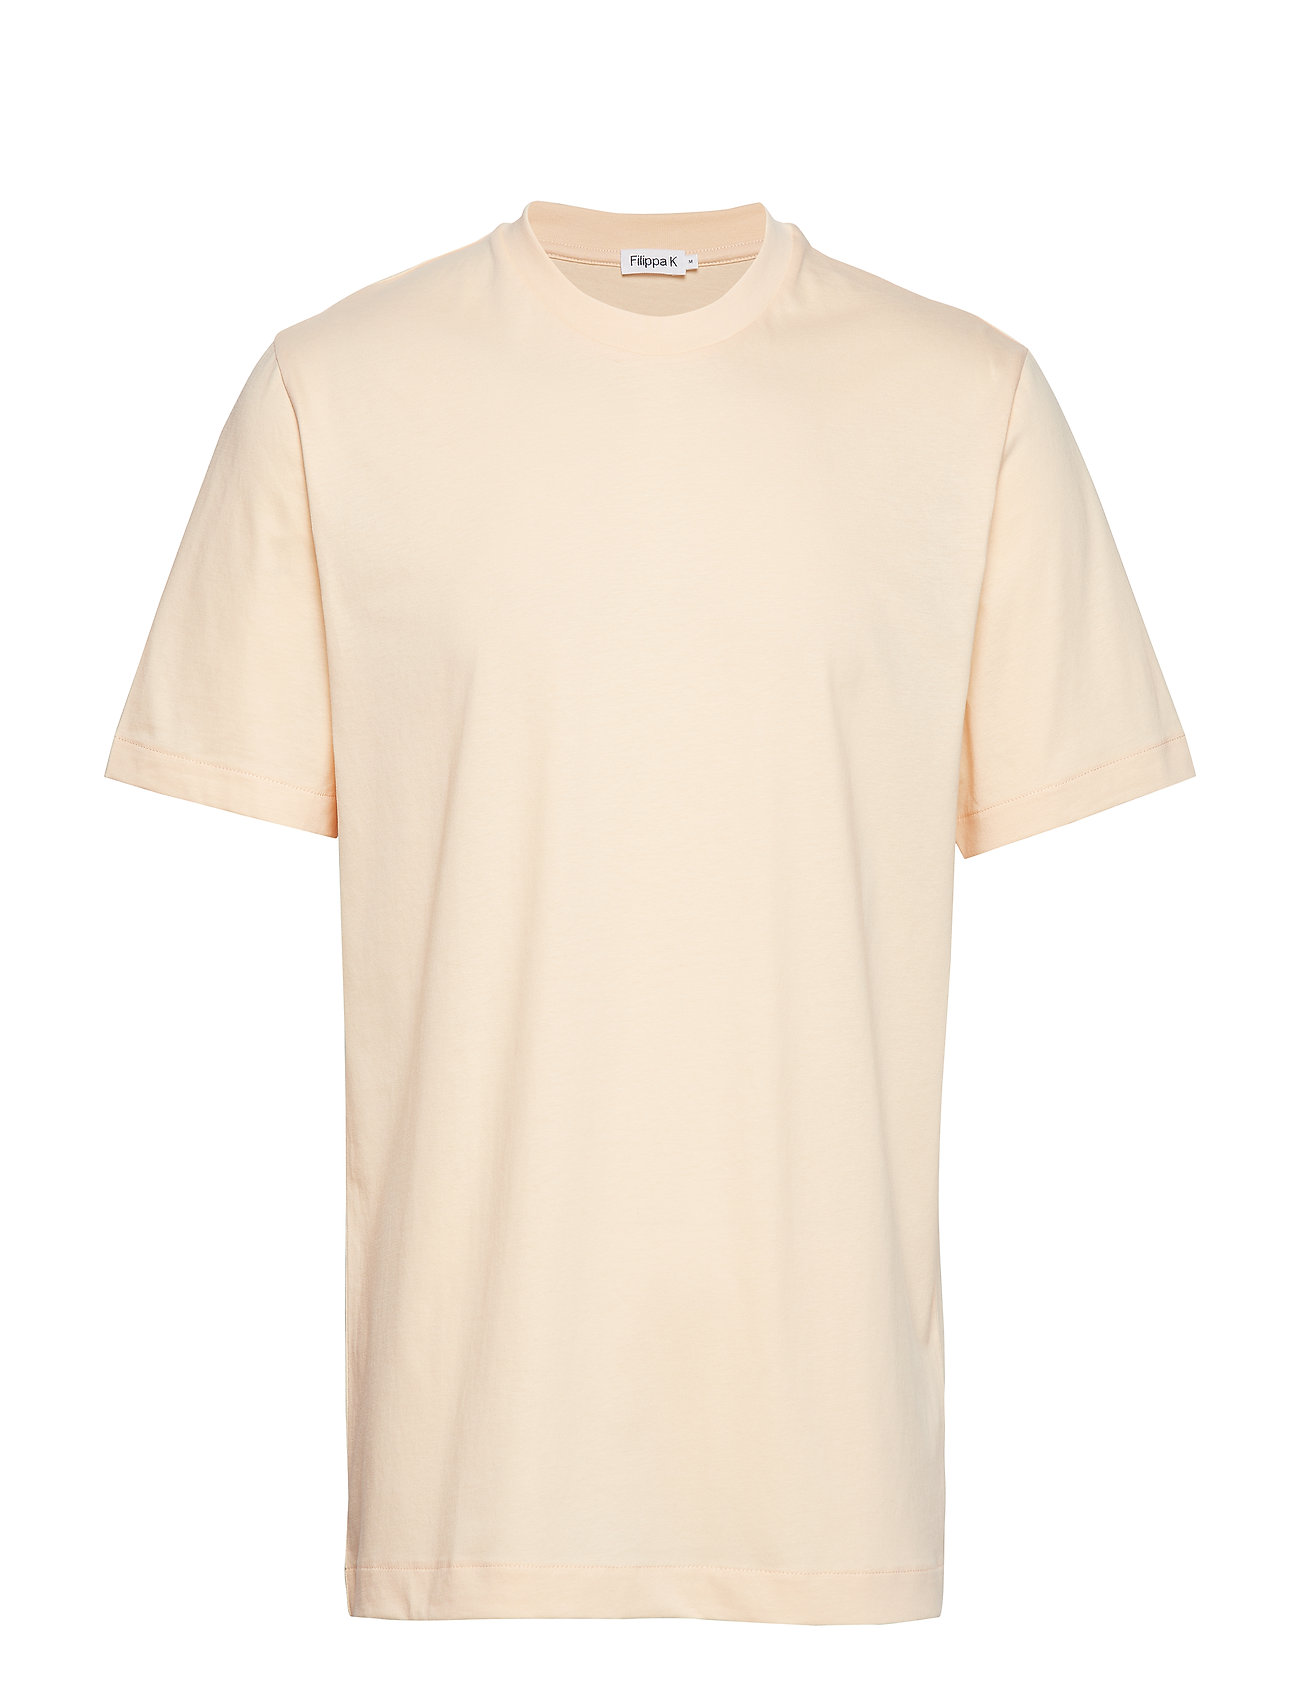 Filippa K M. Single Jersey Tee - BELLINI